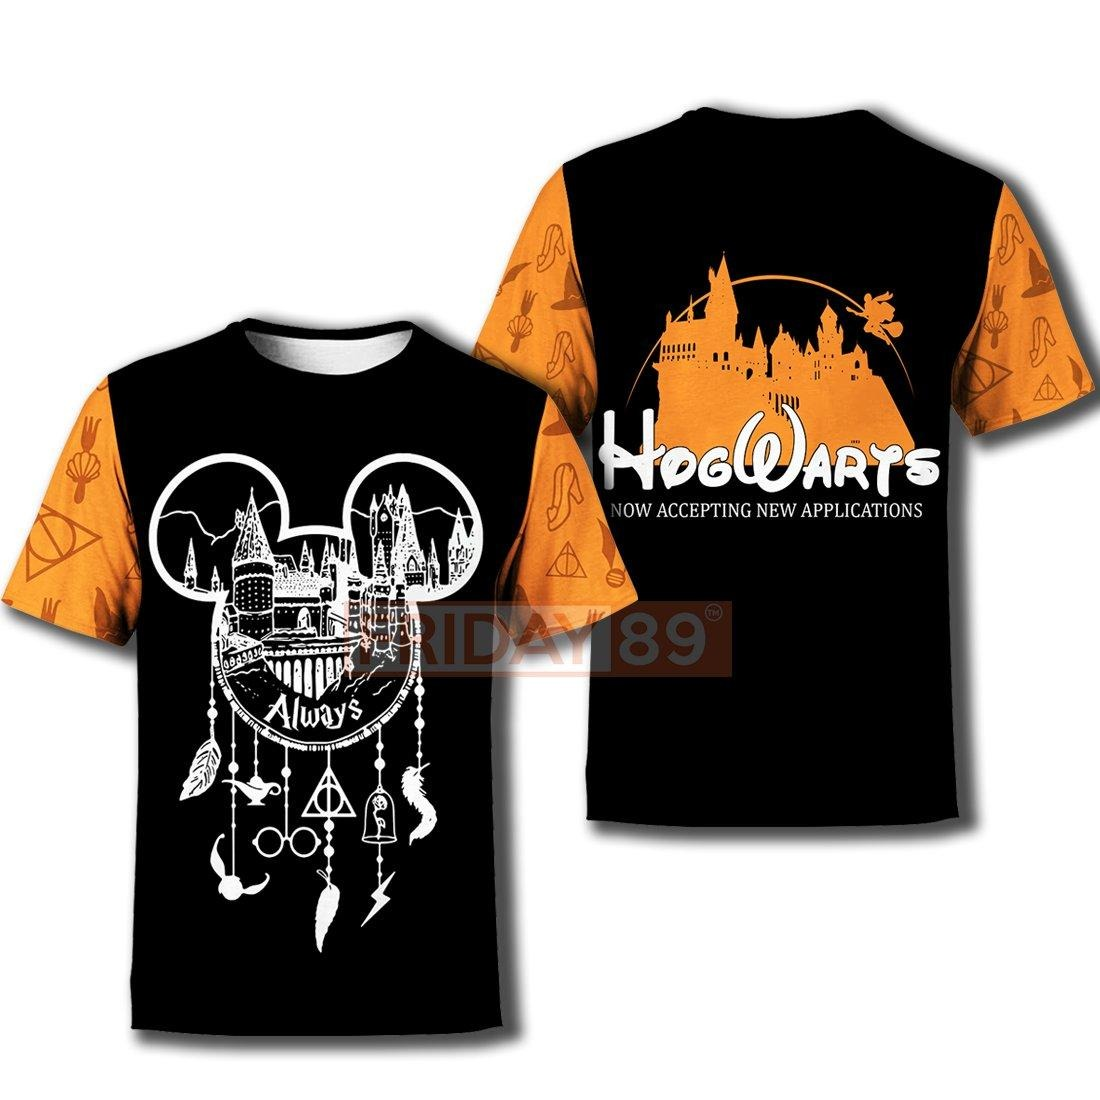 Hogwarts always dreamcatcher now accepting new appilcation 3d hoodie and t-shirt